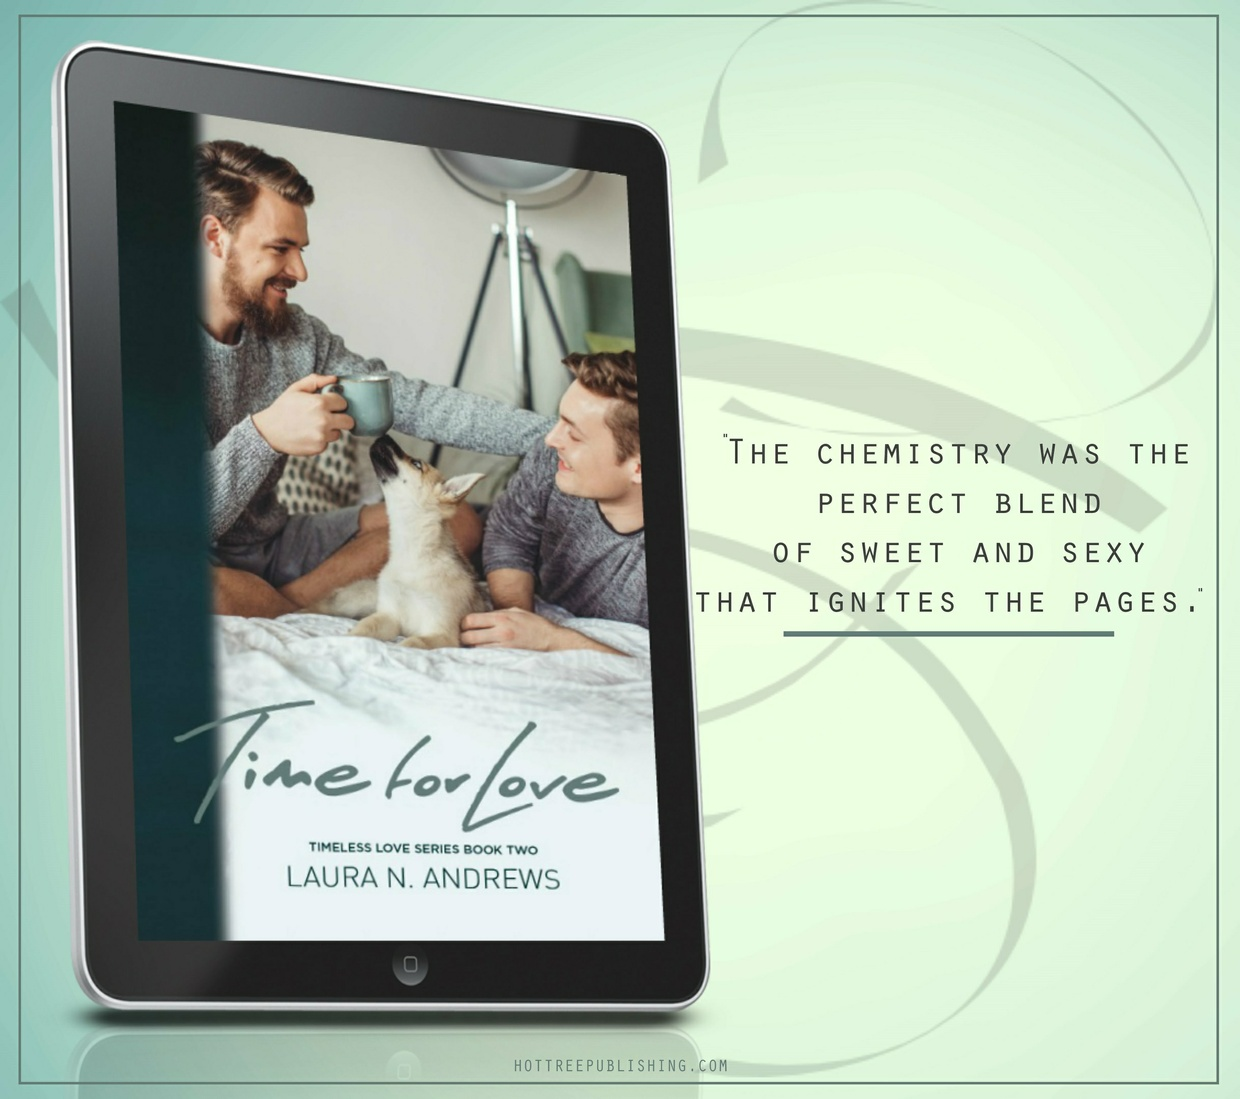 MOBI Time for Love by Laura N. Andrews